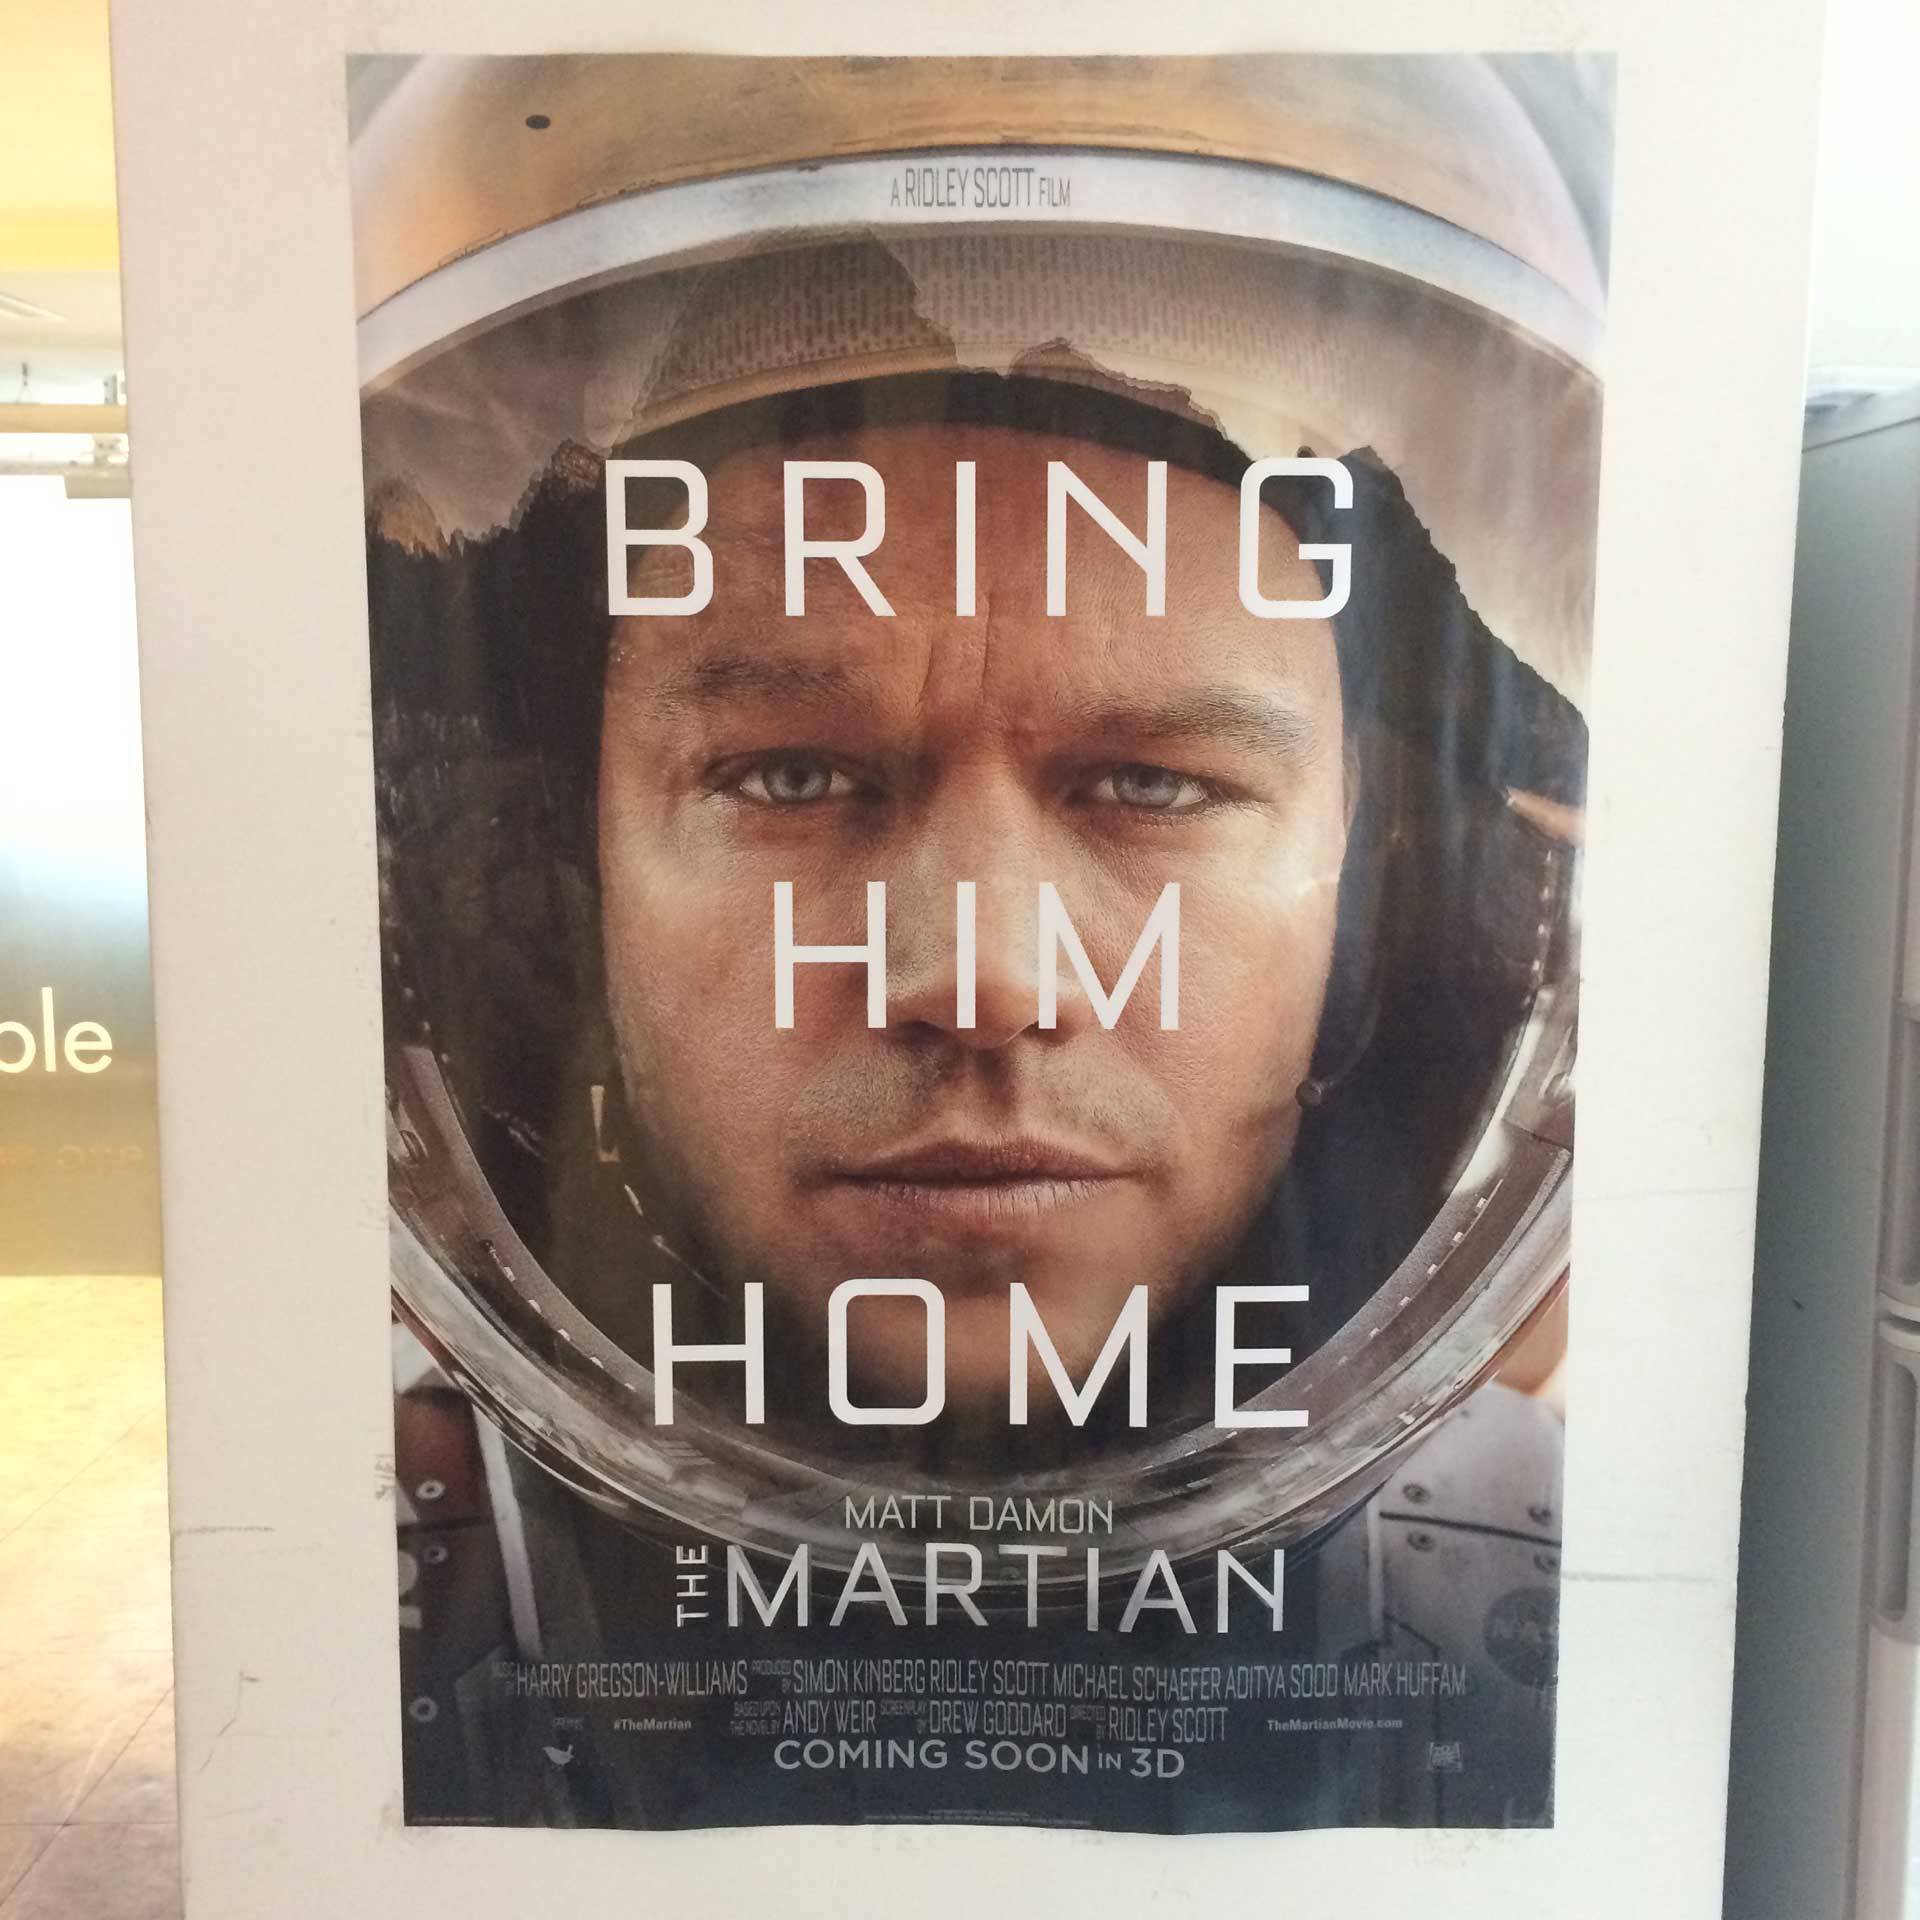 movie-the-martian-poster-font-bring-him-home-1920